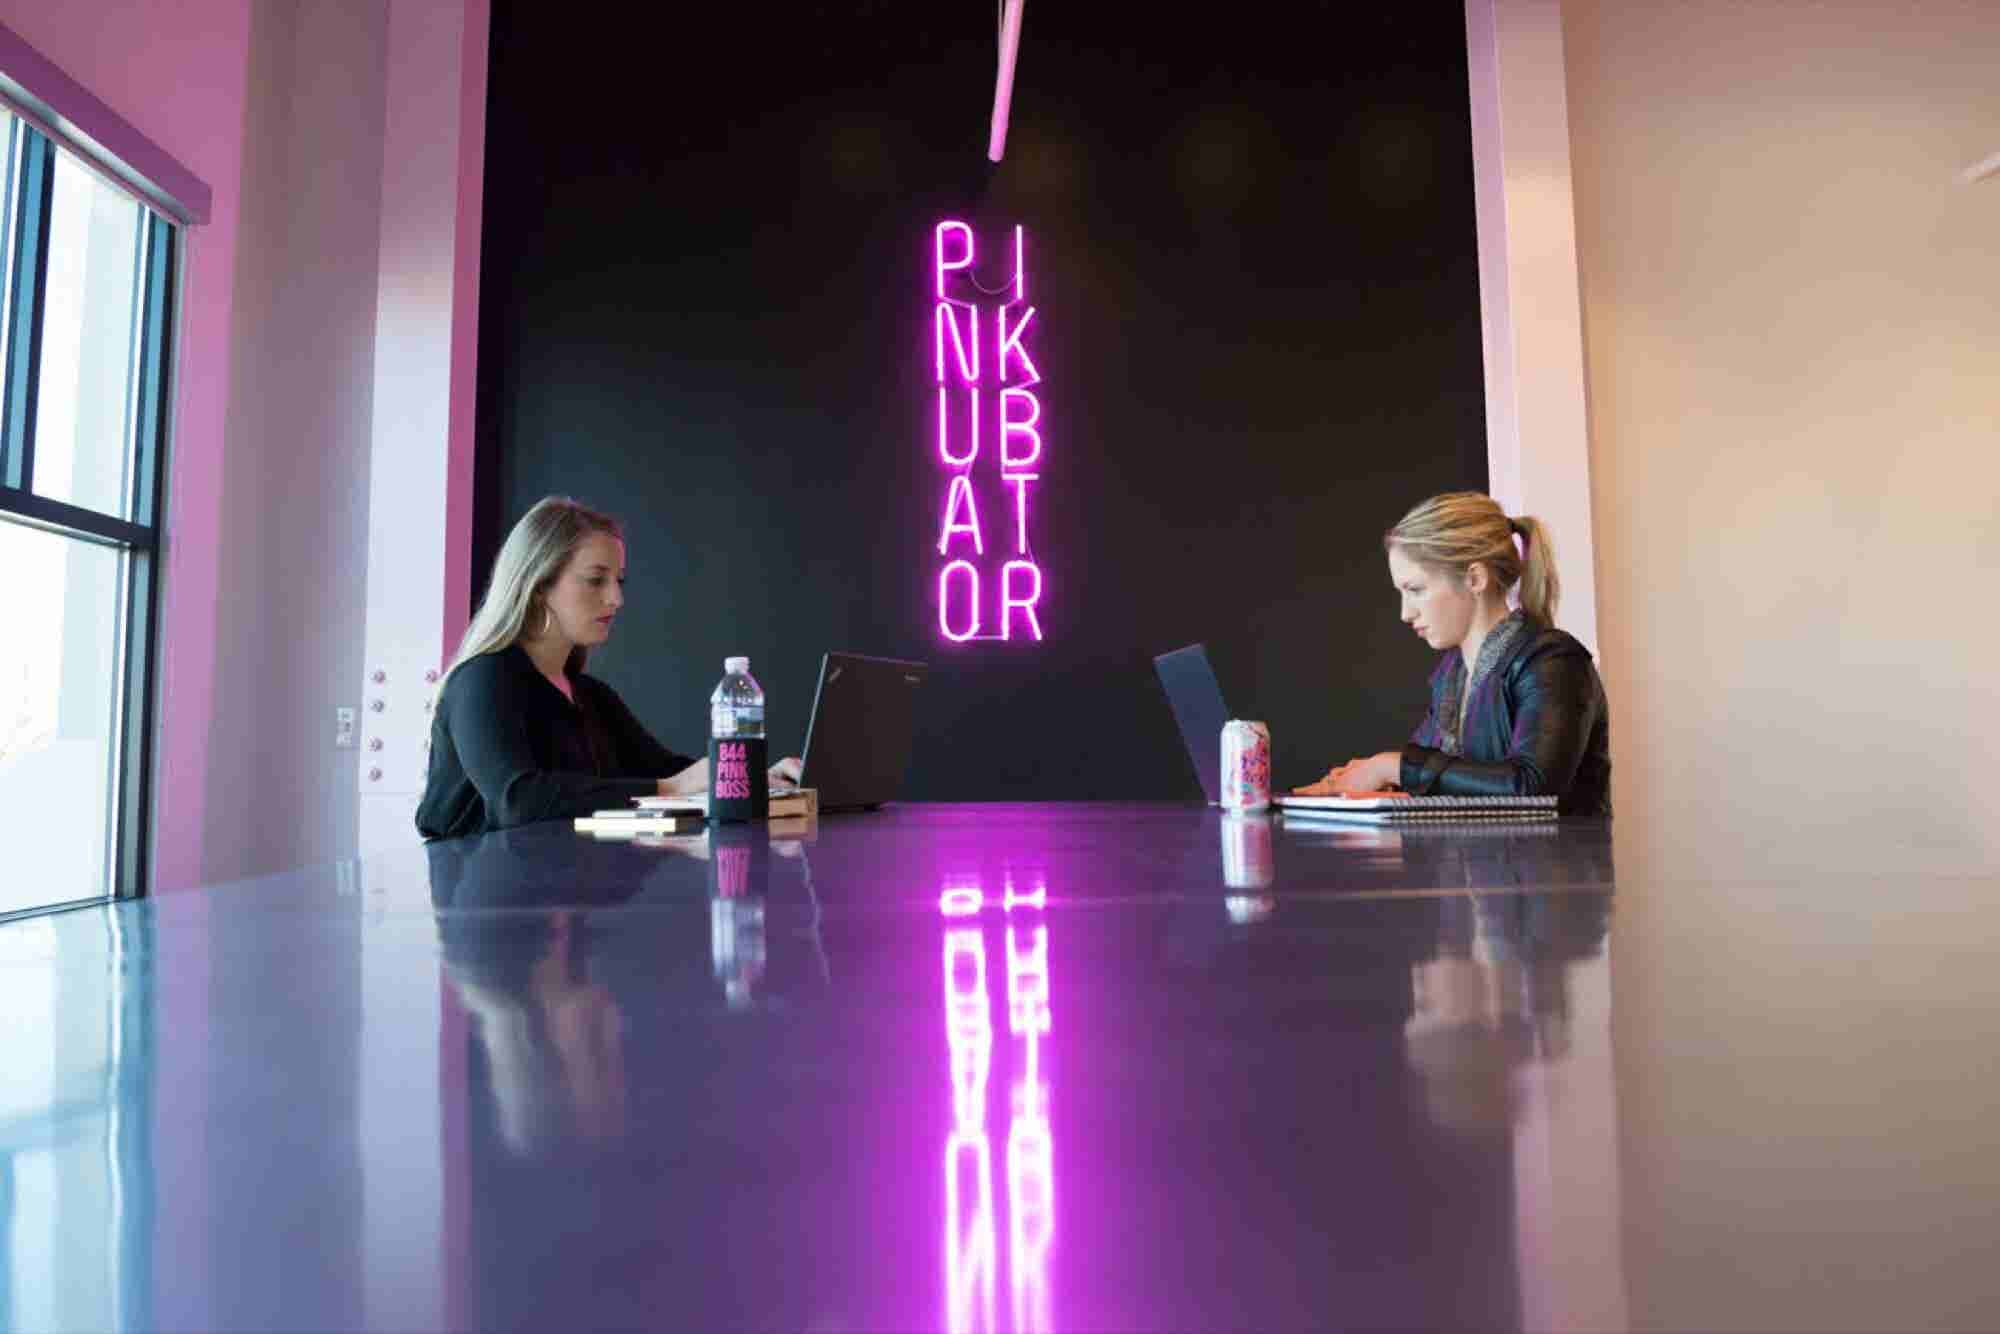 This Incubator for Women-Focused Businesses Finds the Color Pink Empowering, Not Demeaning